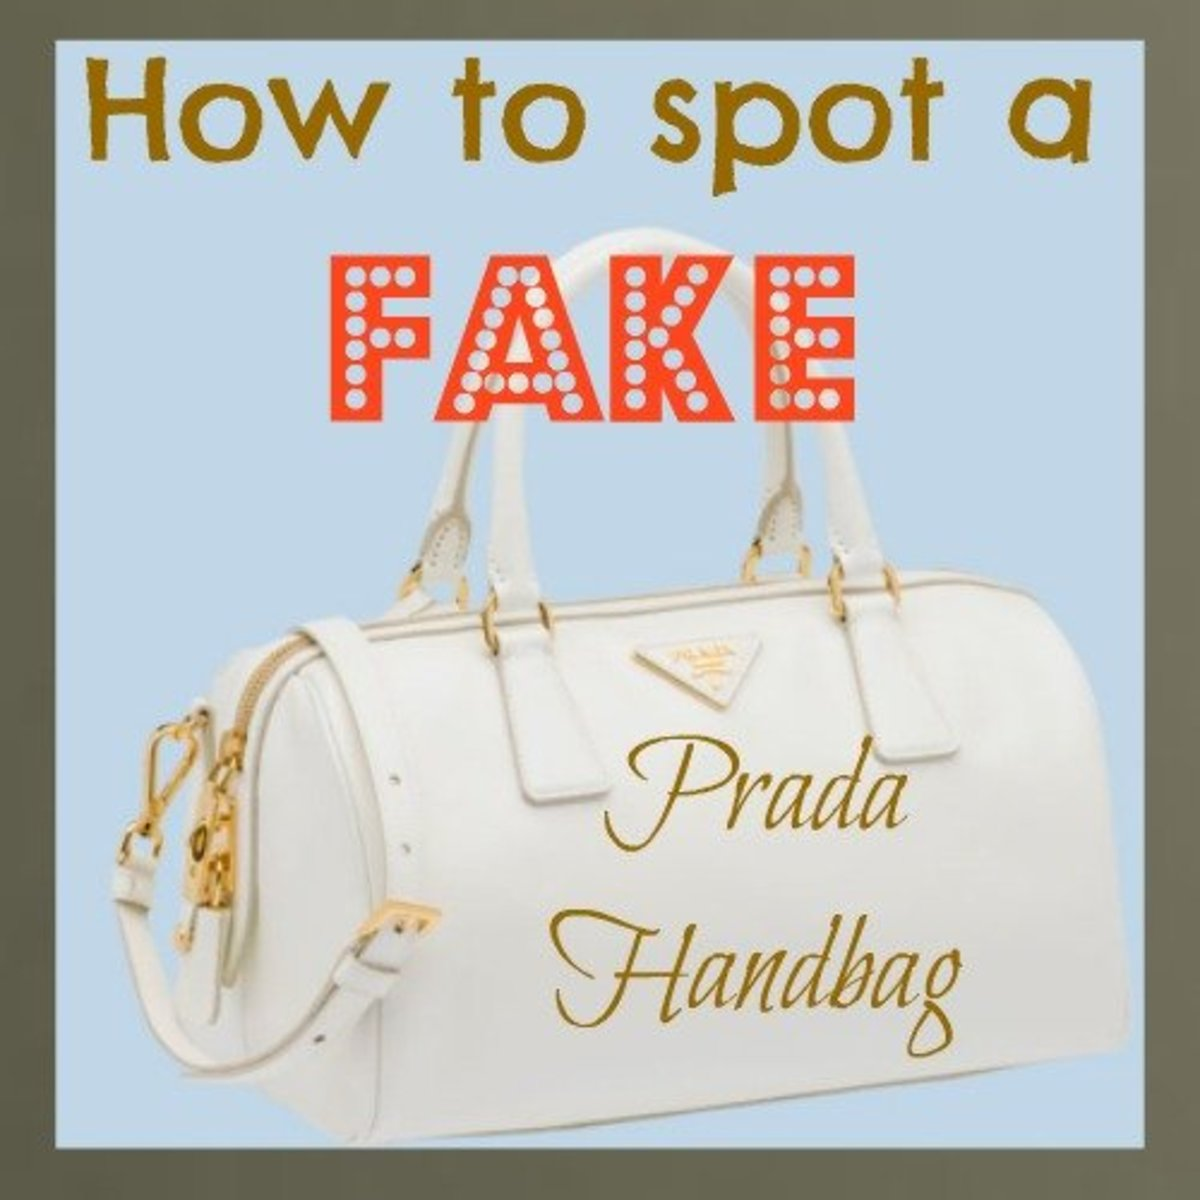 How to spot a fake Prada Bag, Purse Or Wallet (Without An Authenticity Card)